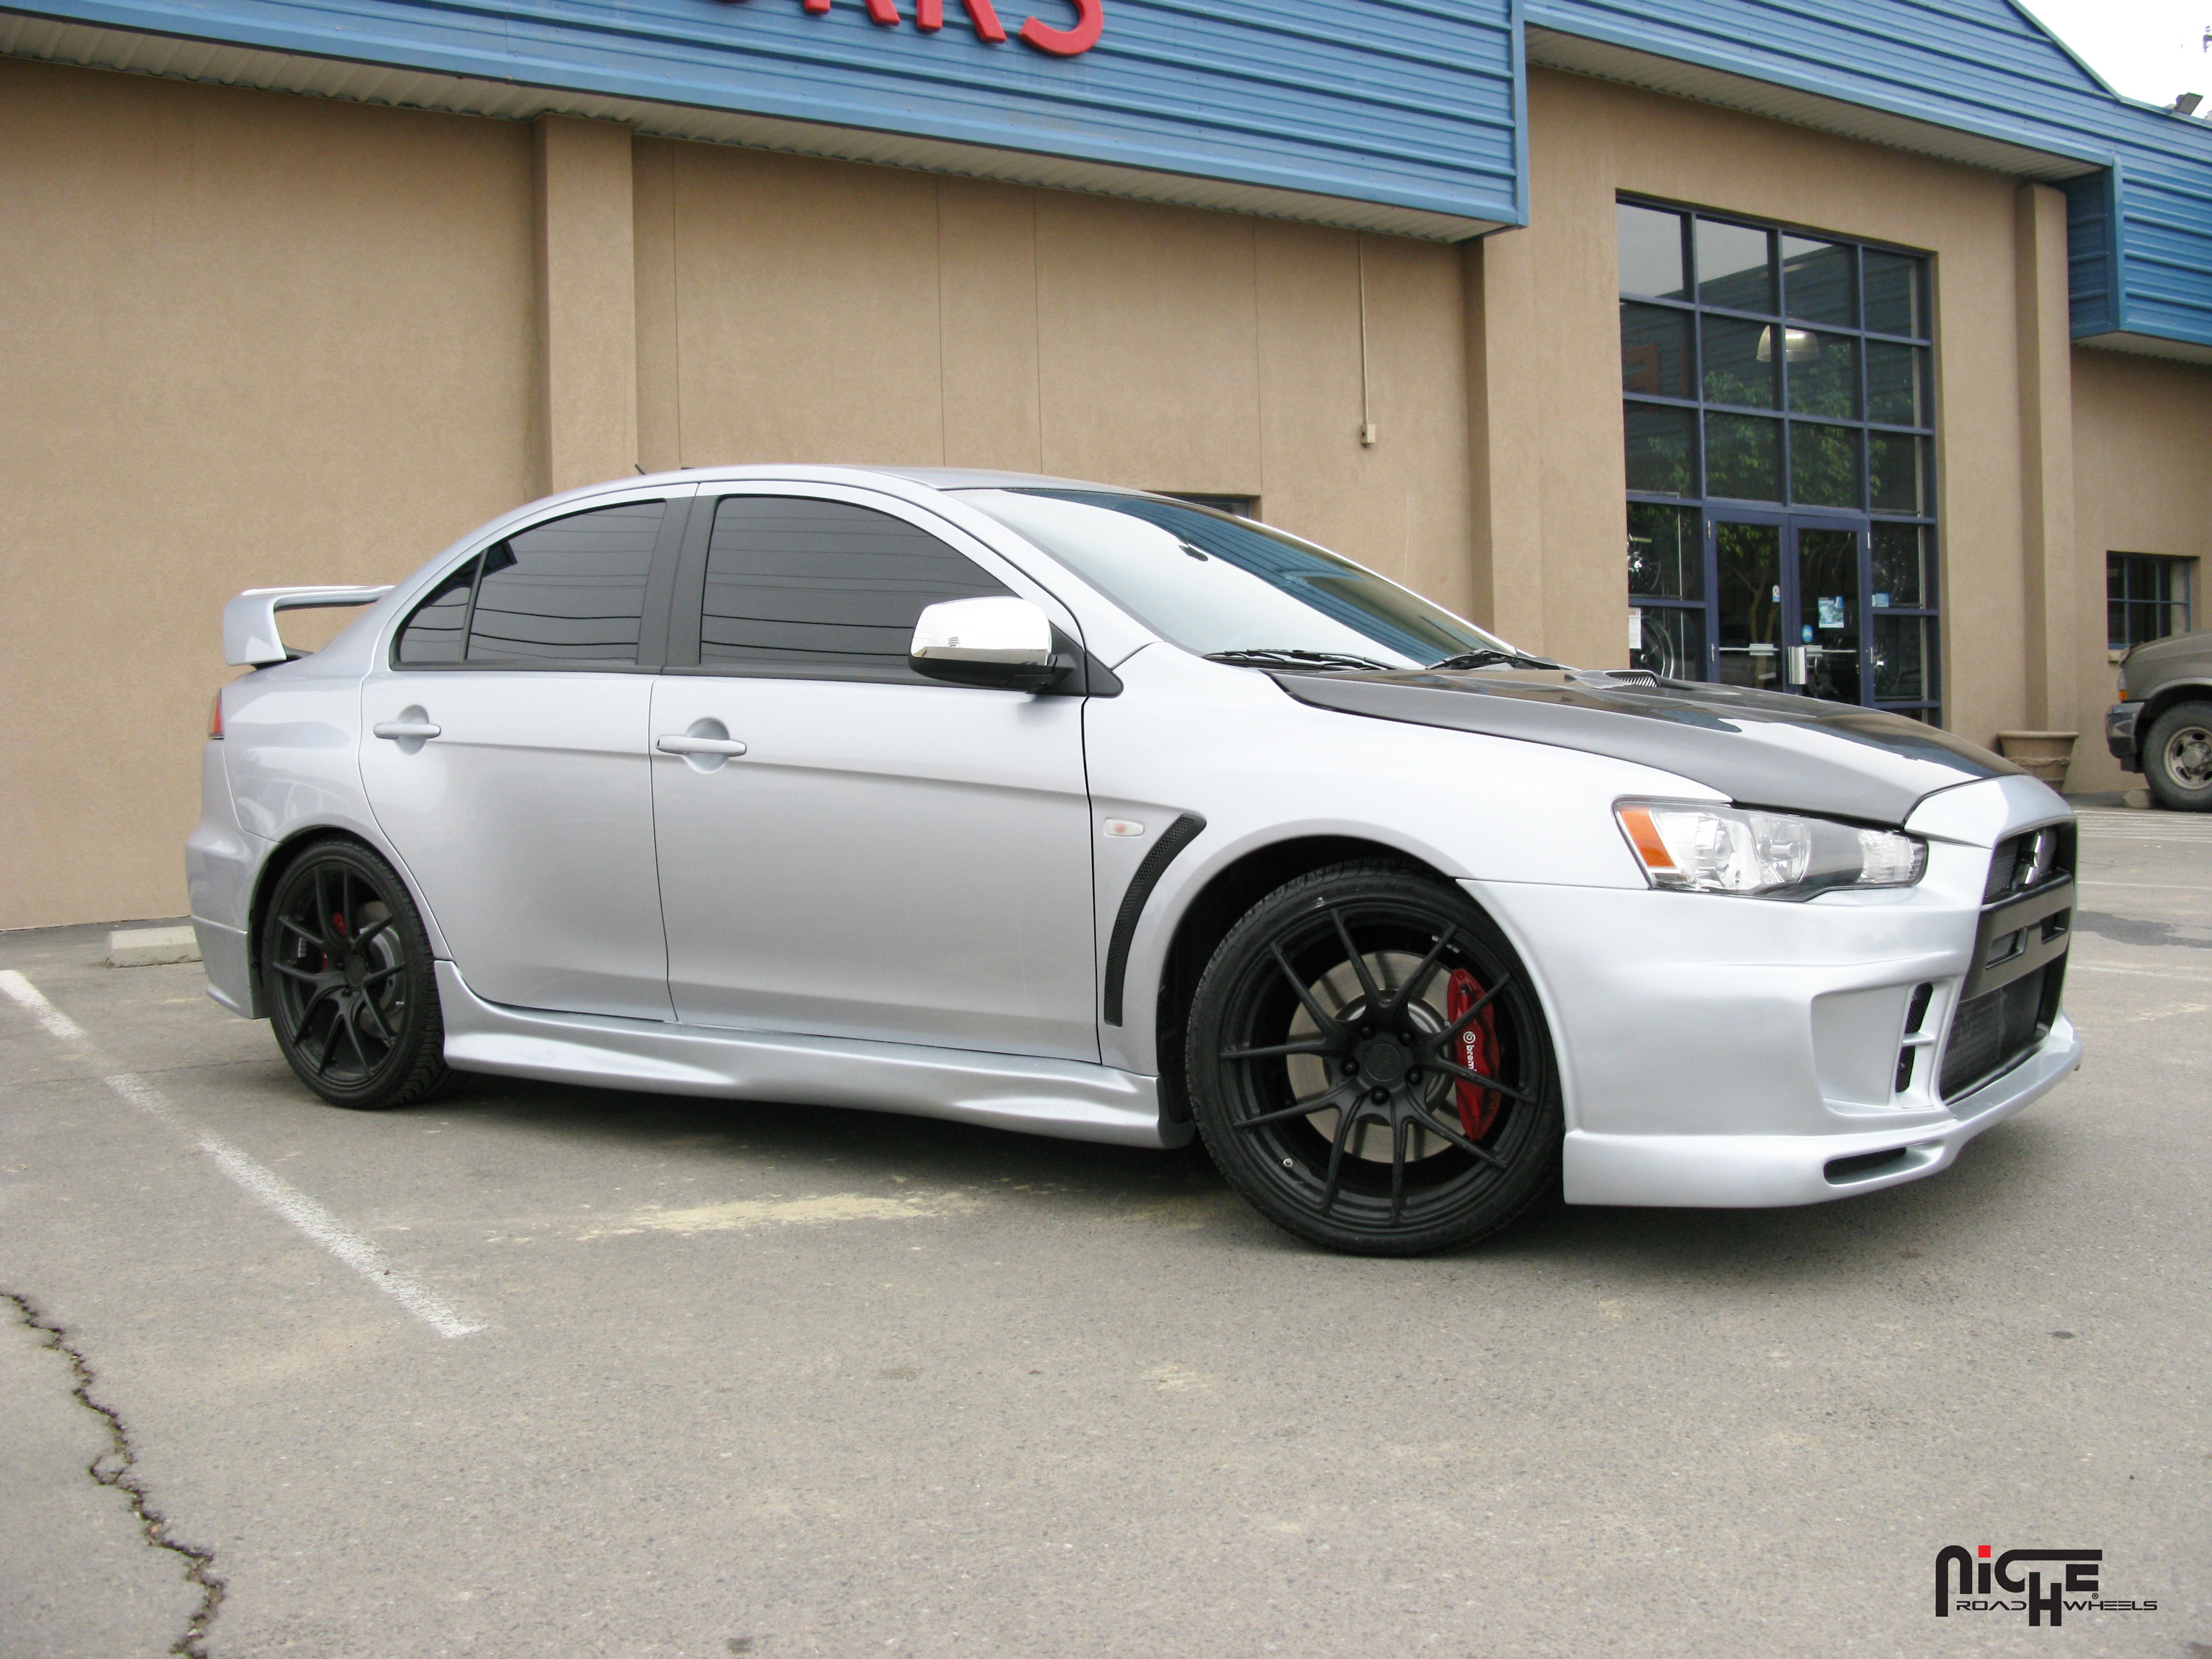 Mitsubishi Lancer Evolution Targa Gallery - MHT Wheels Inc.